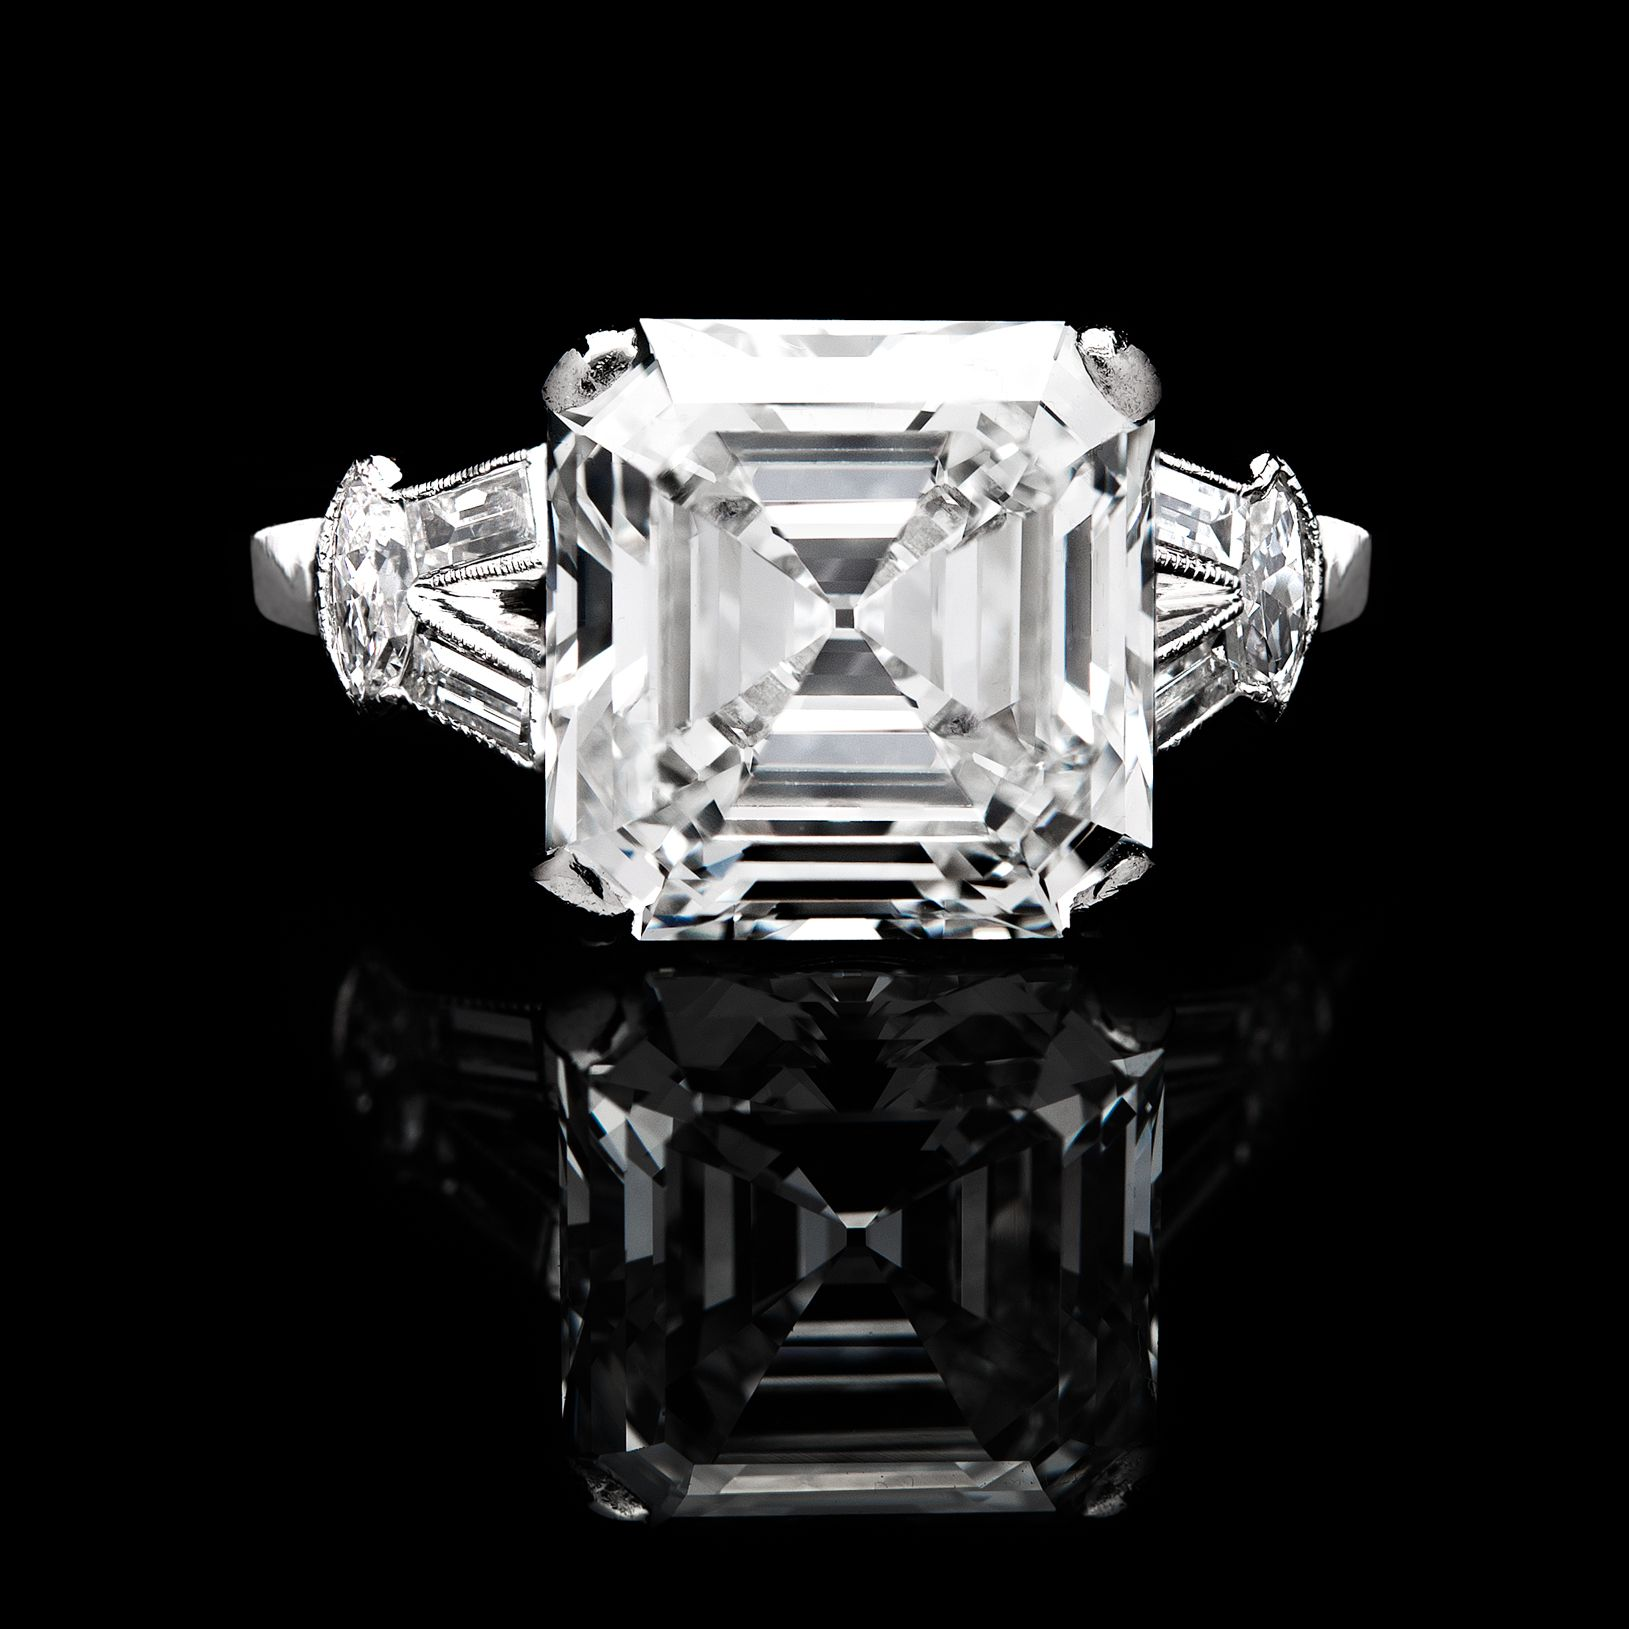 Stunning Engagement Ring Features an H Color VVS2 Clarity GIA